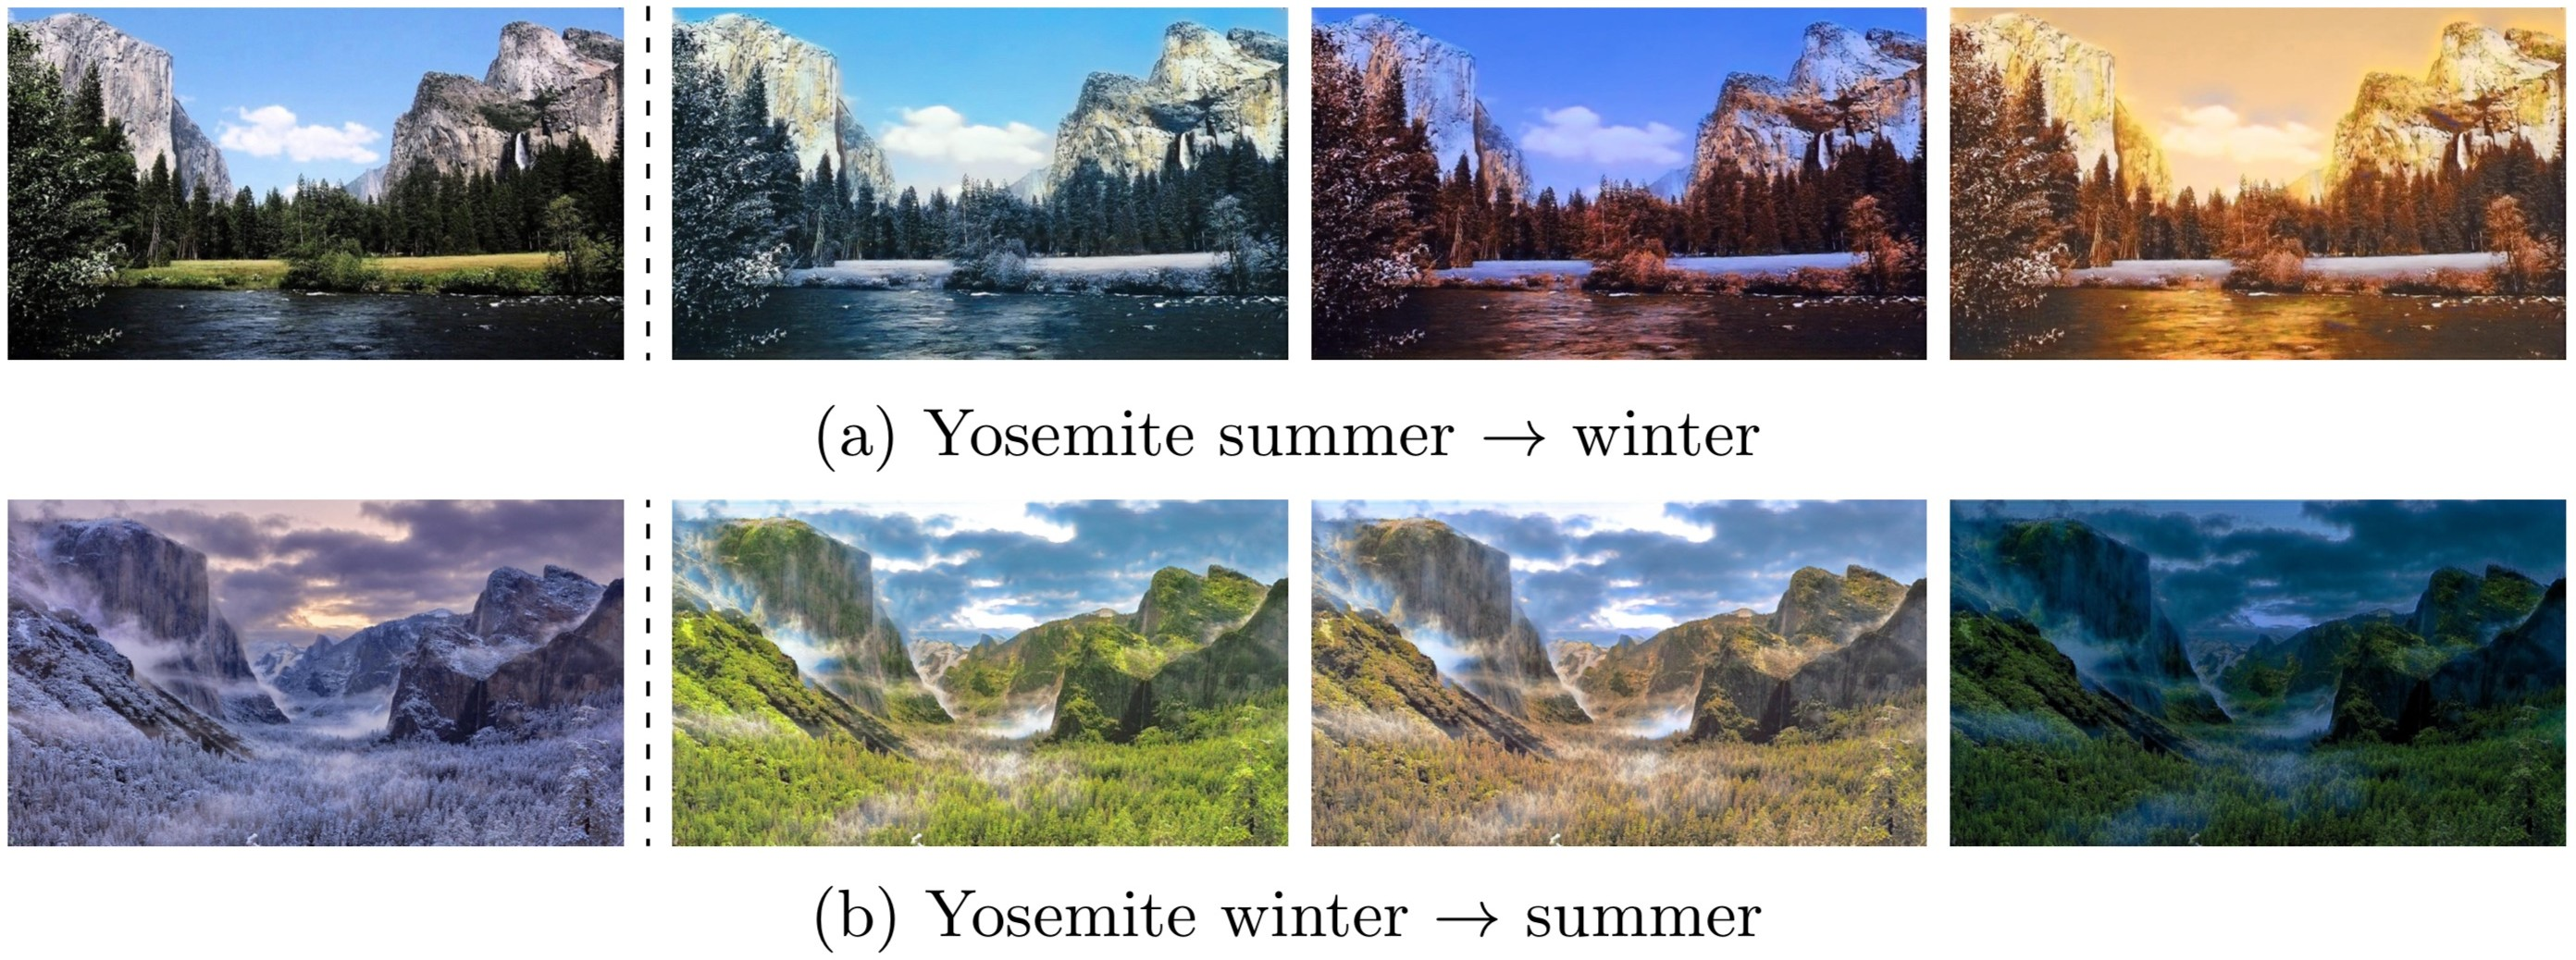 summer2winter_yosemite